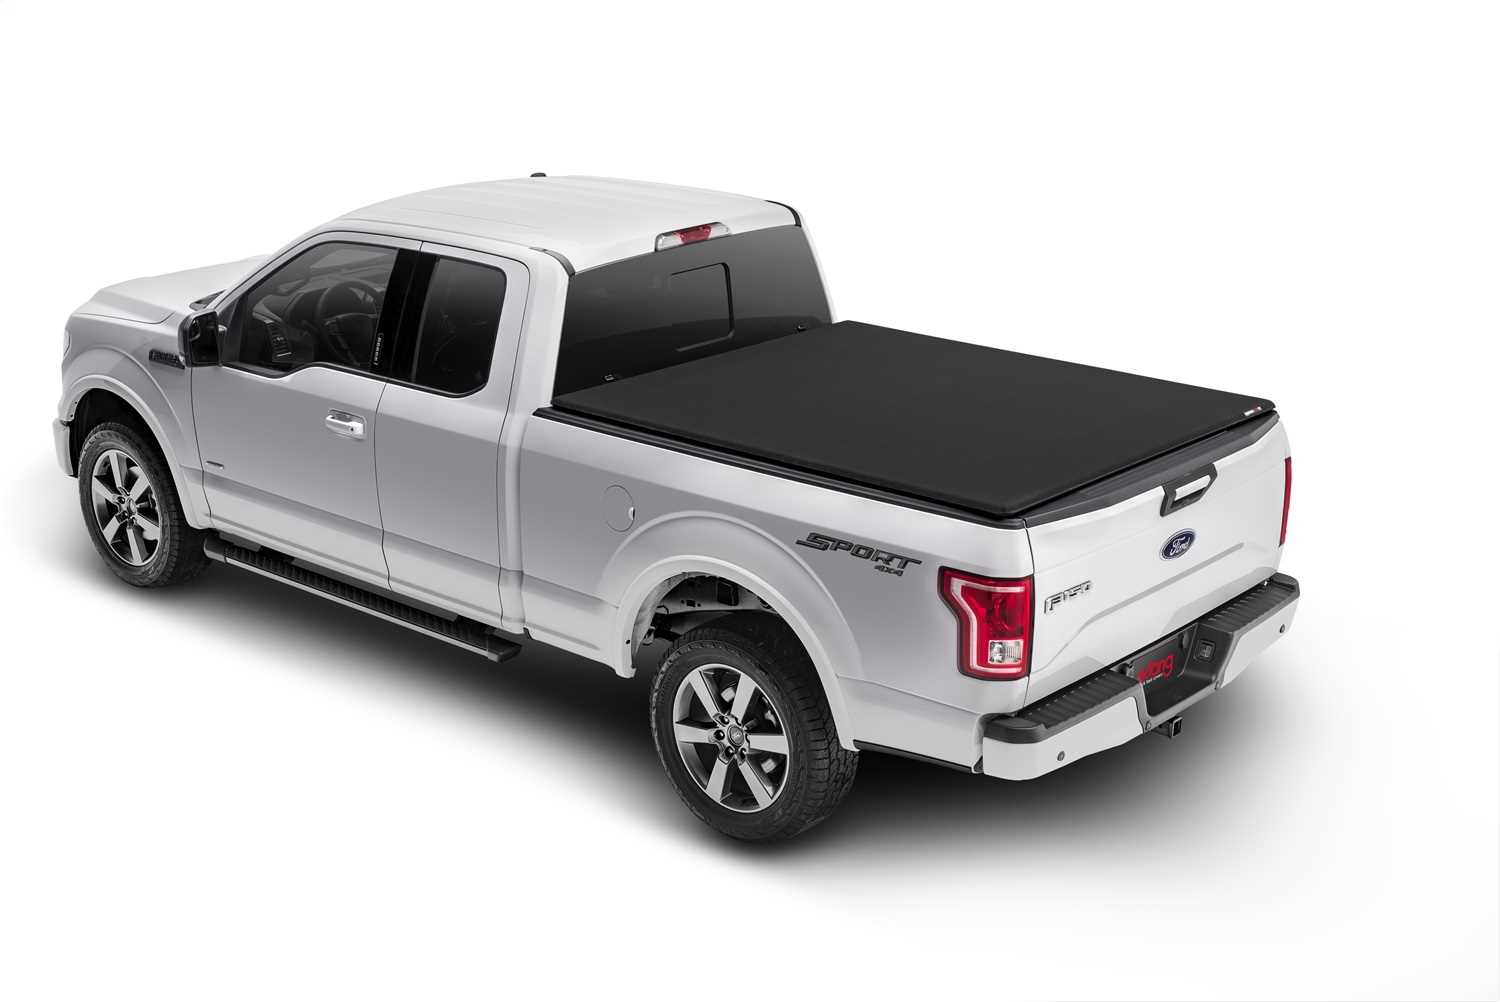 94458 Extang Trifecta Signature 2.0 Tonneau Cover